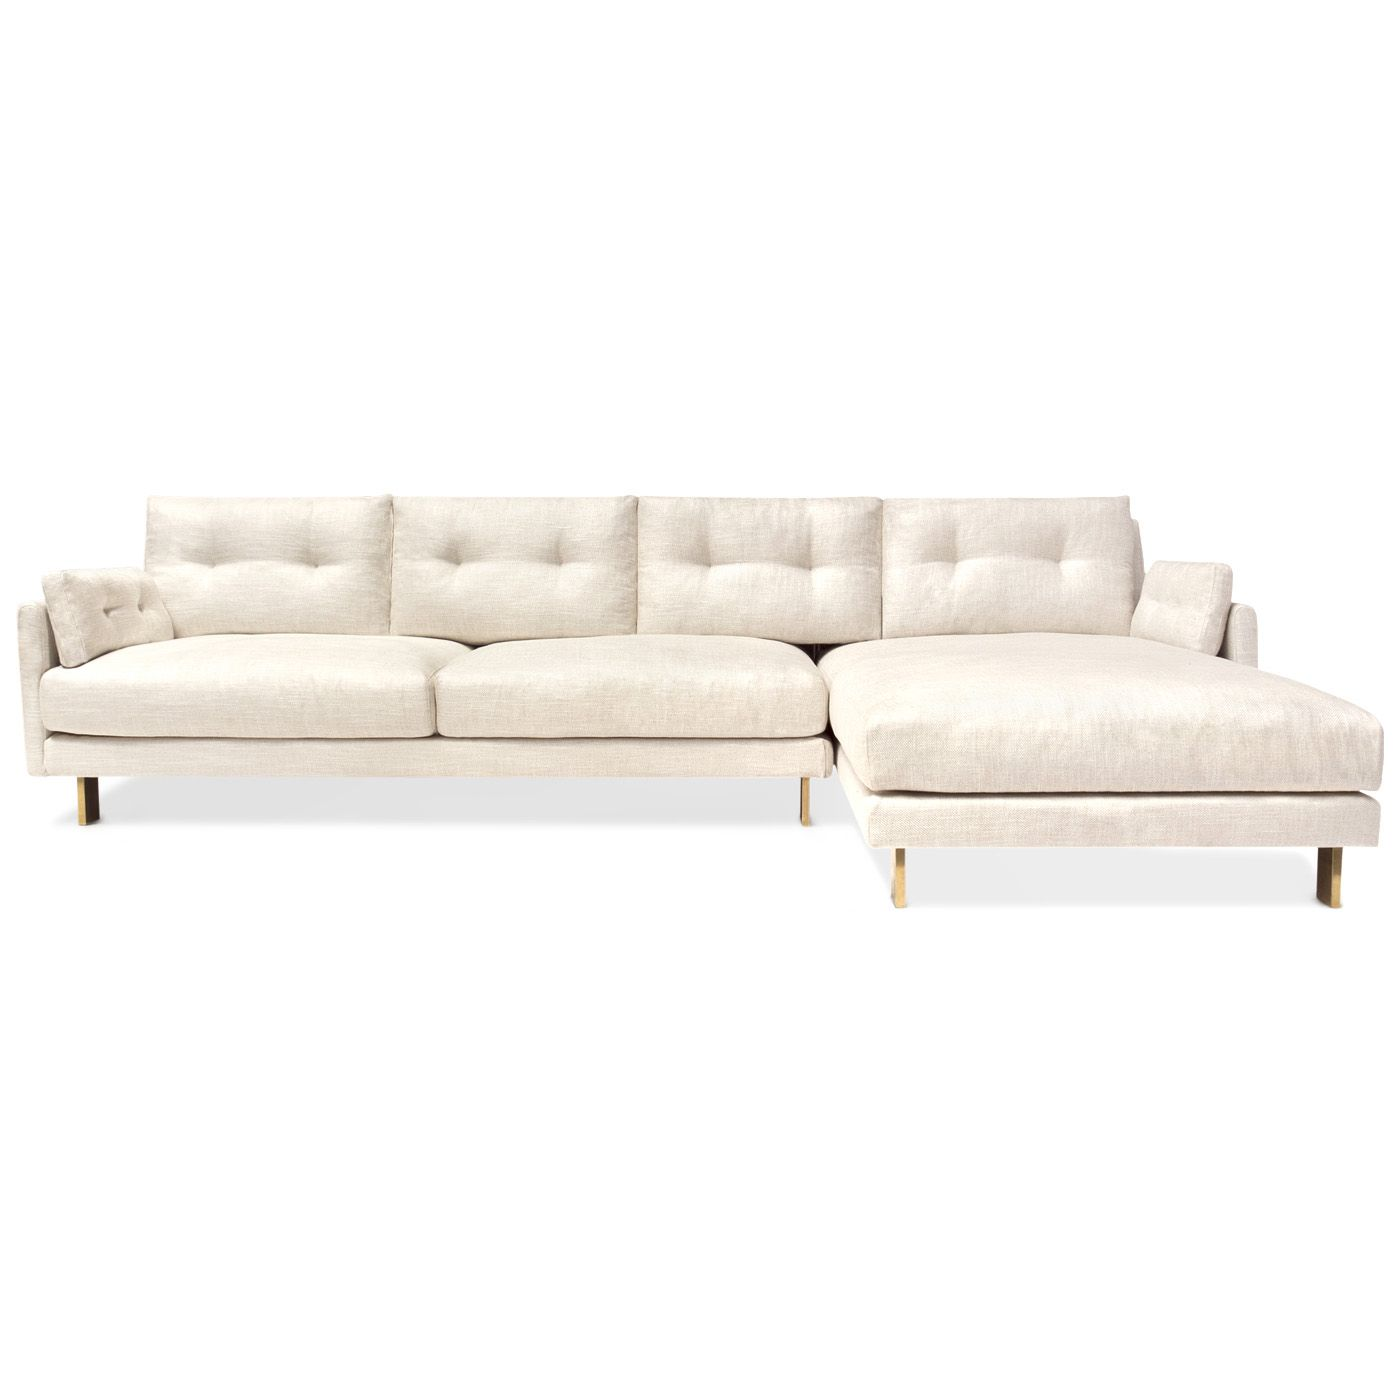 Modern Mid Century Sofas and Sectionals